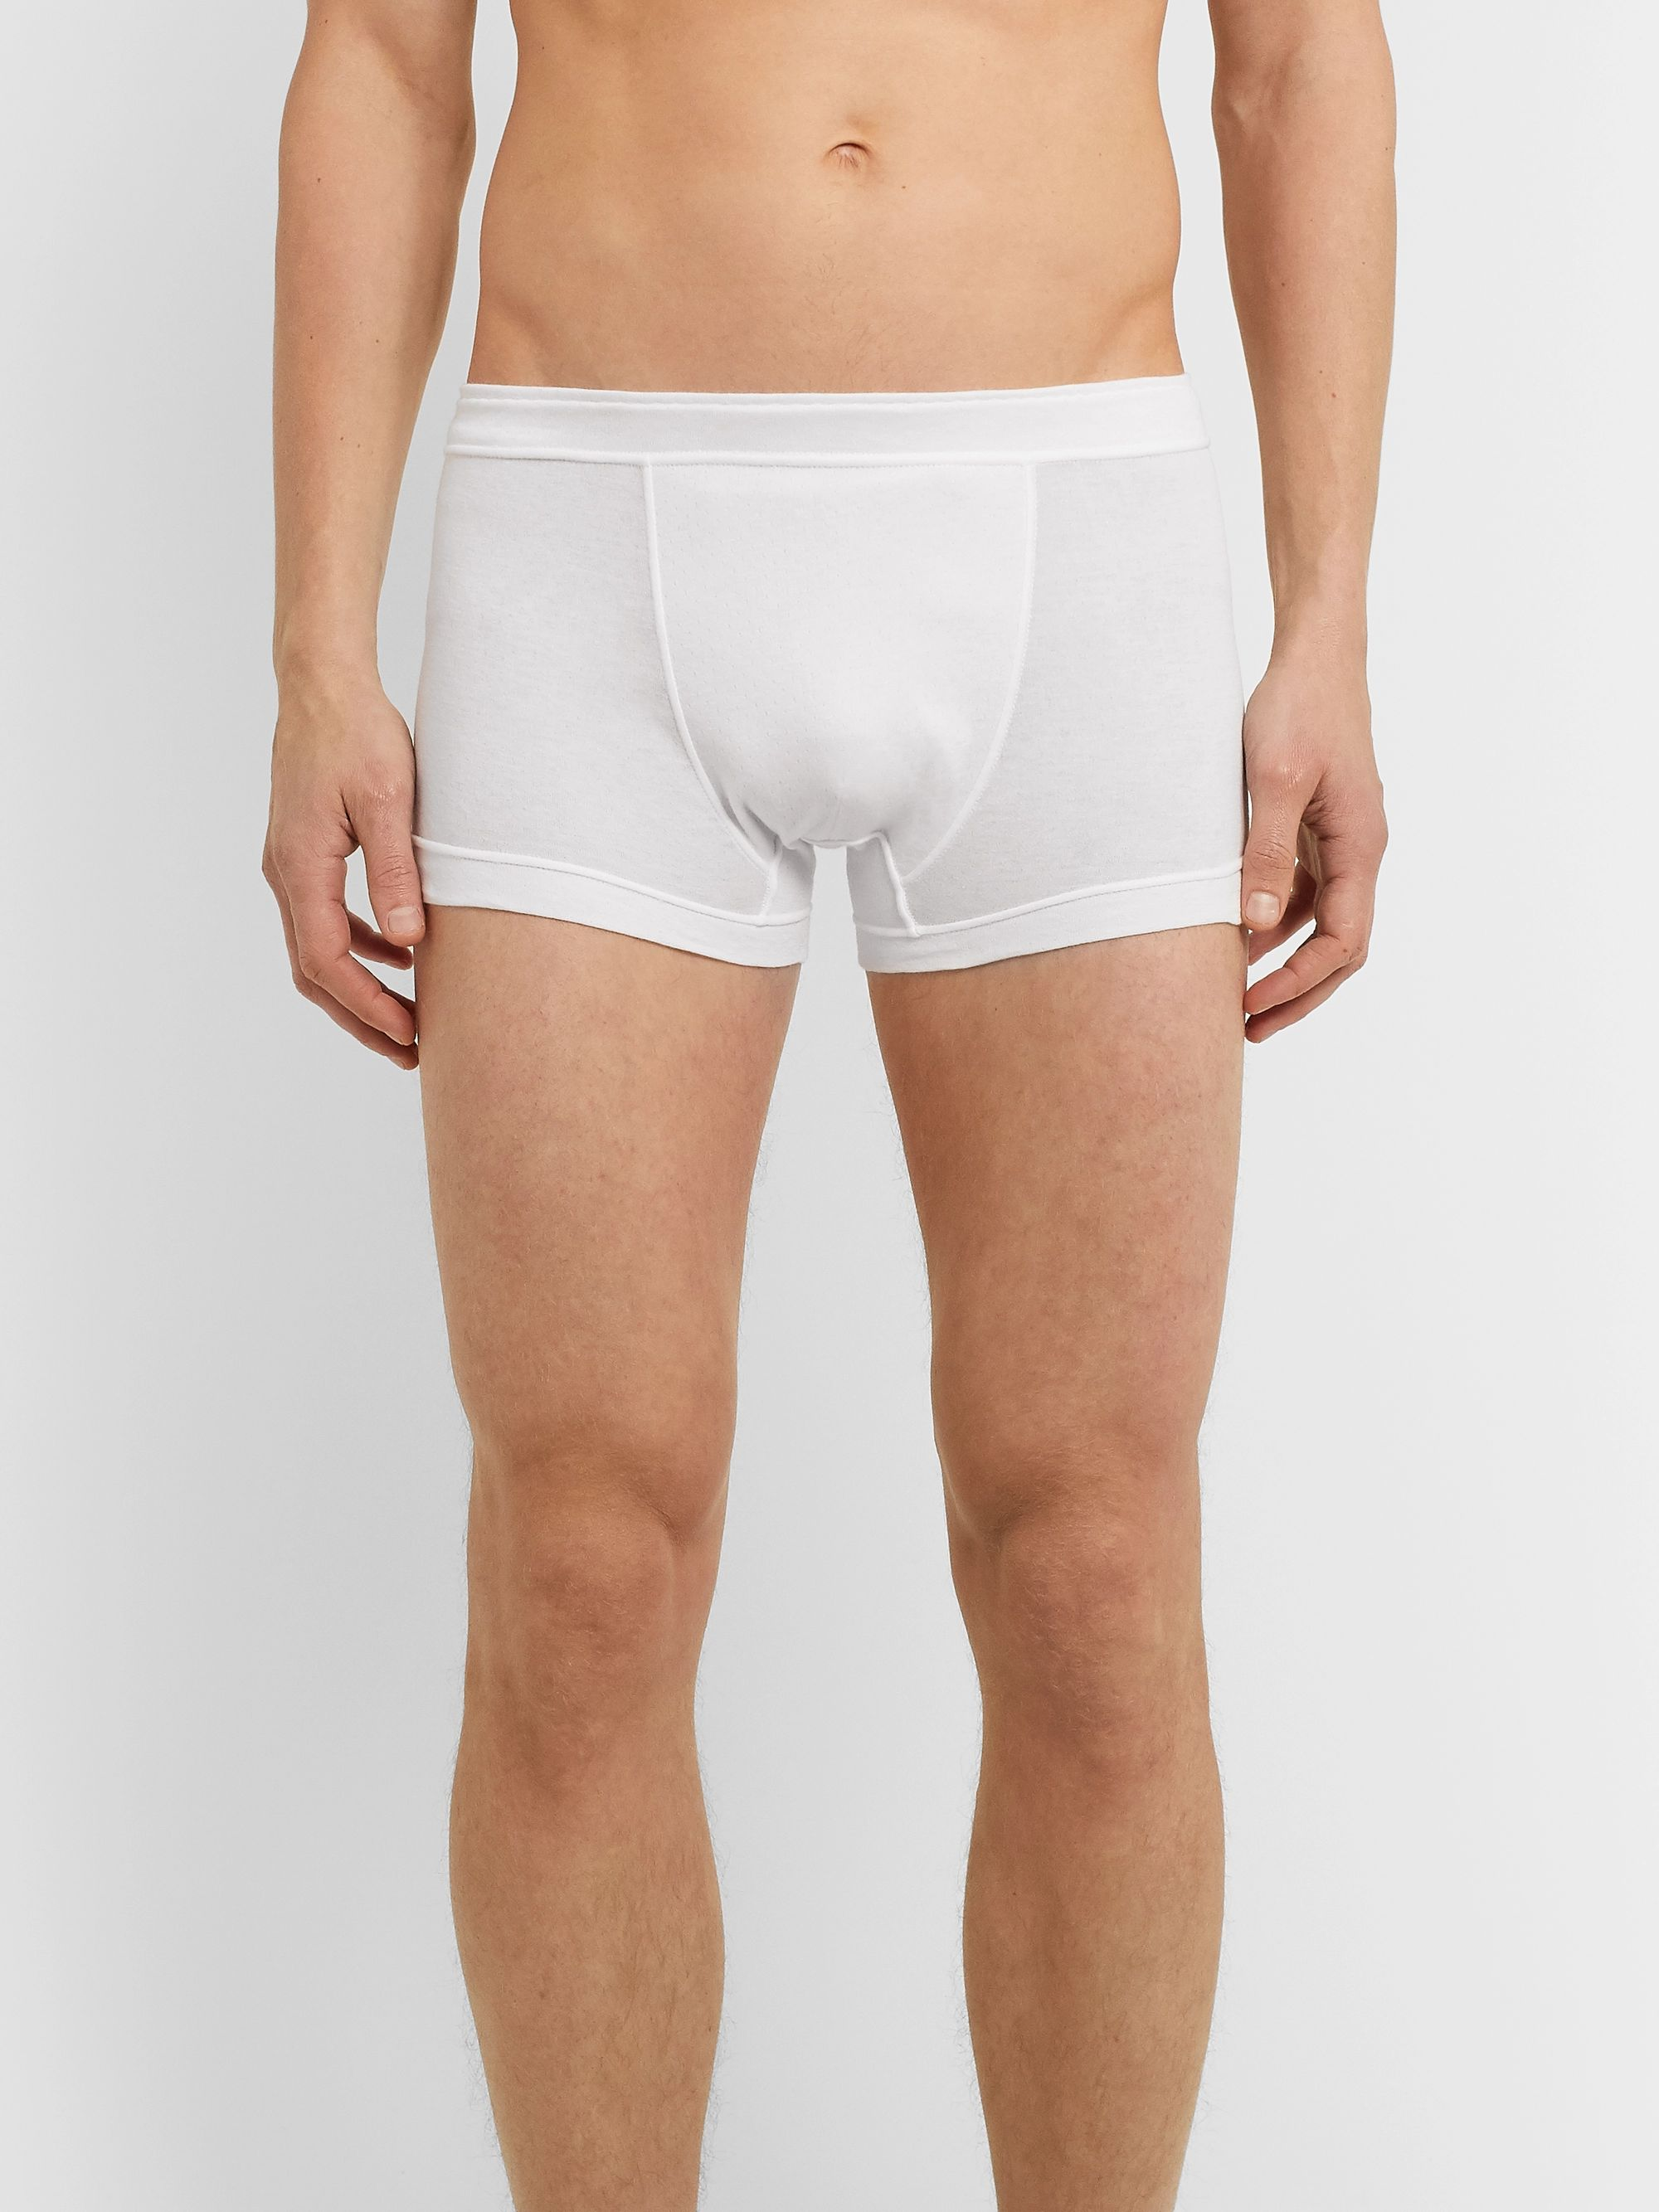 Secondskin Cotton Boxer Briefs